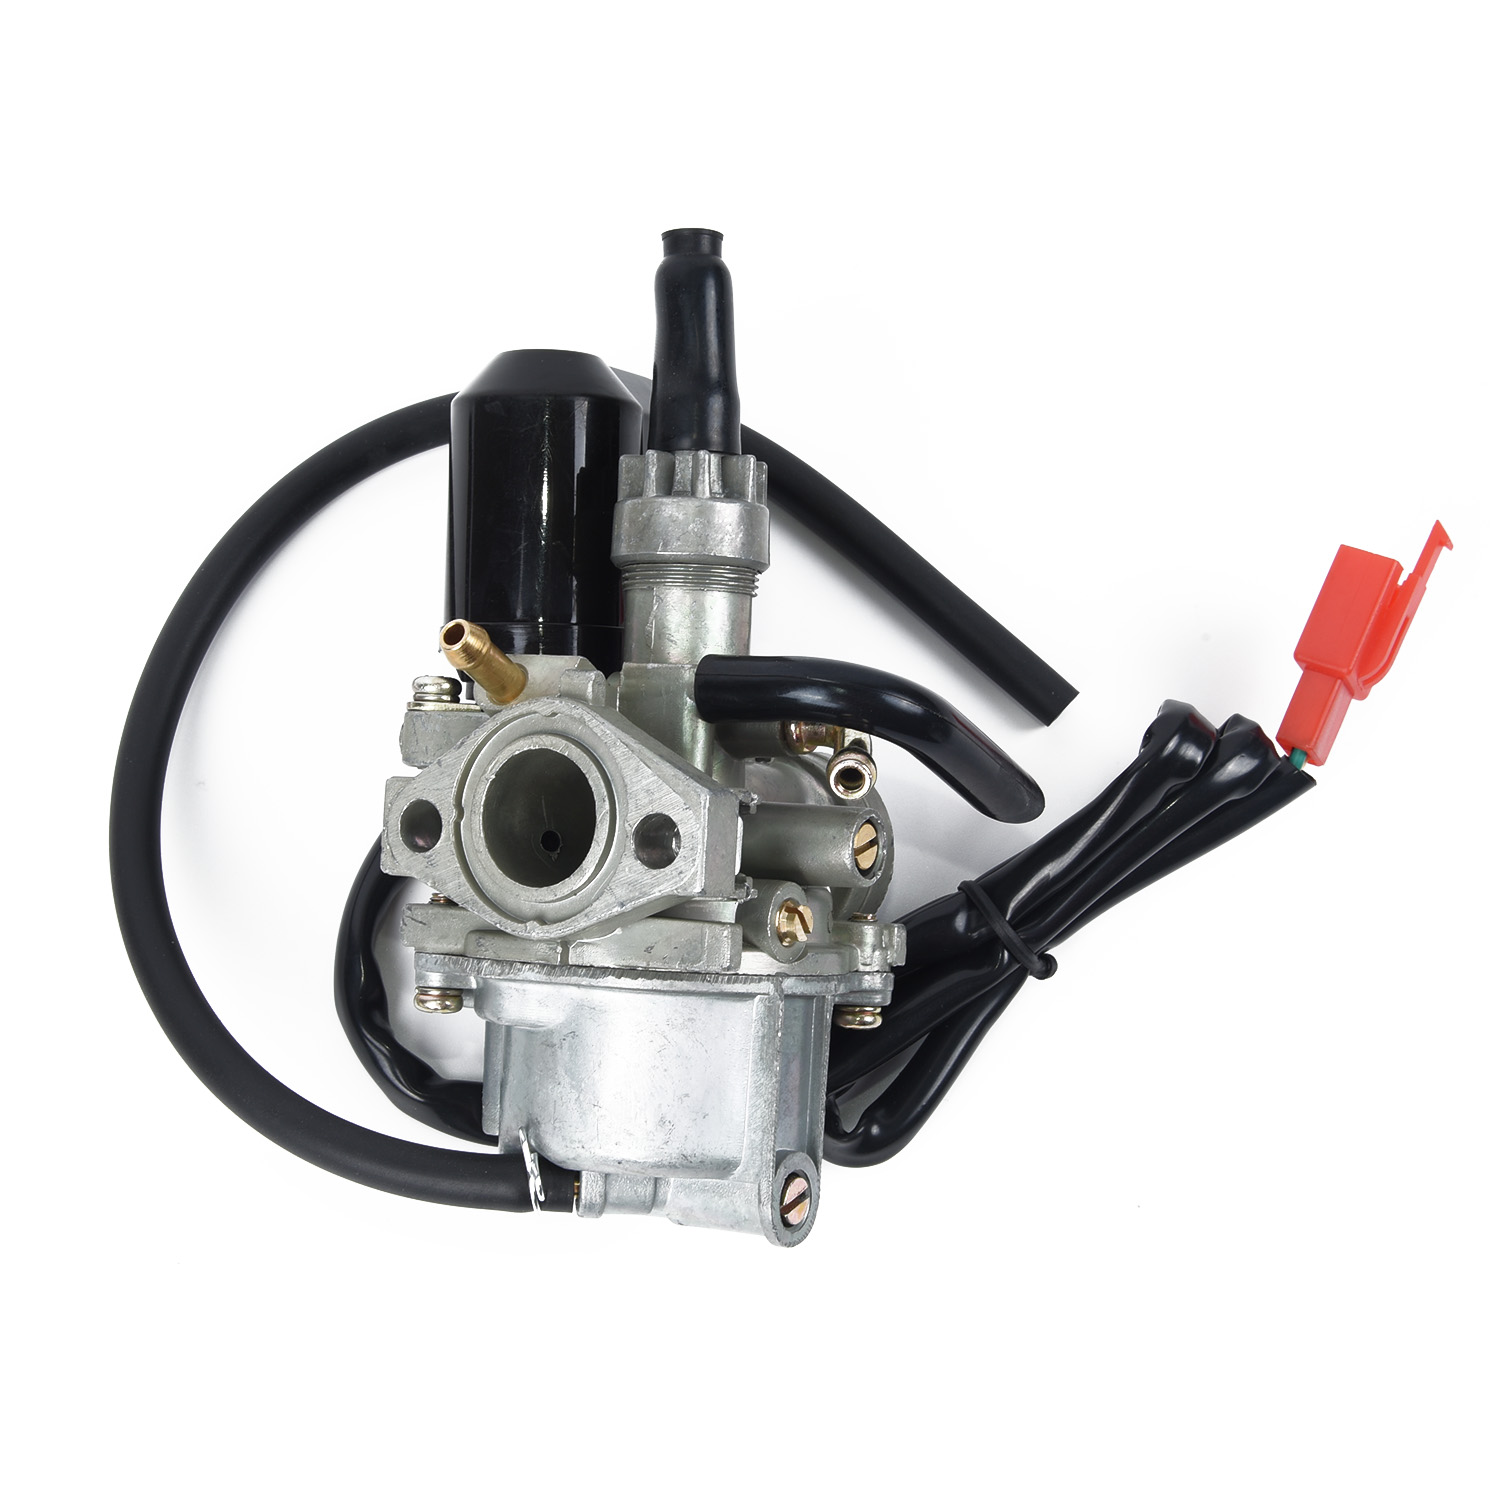 17mm Carb Carburetors For Honda DIO 50cc 24 30 Tact 50 SP ZX34 SYM Kymco Scooter Carburetor Decoration Accessories|Carburetors|   - title=